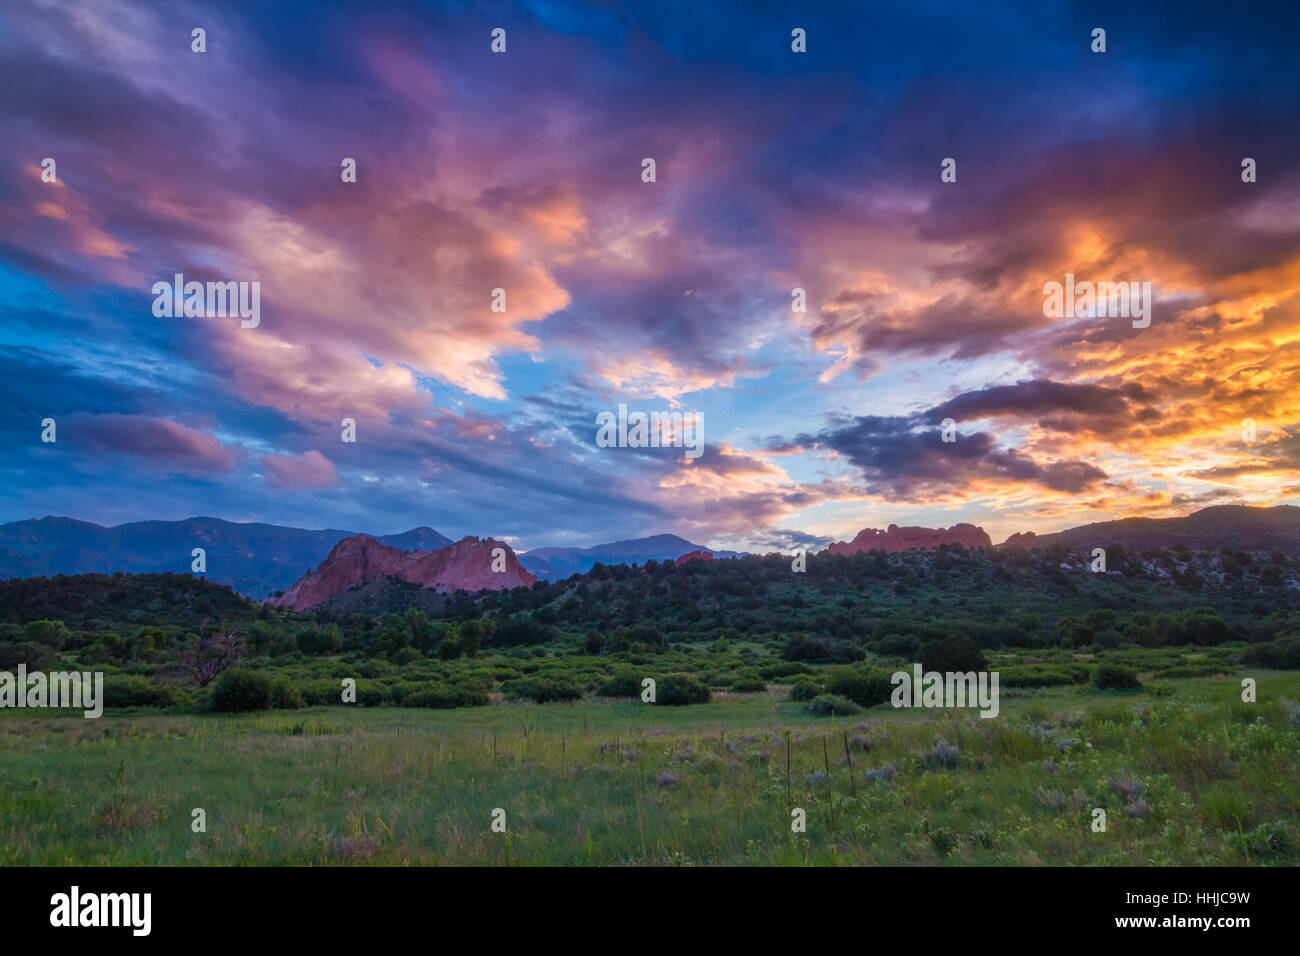 An incredible sunset covers the rocky landscape of Garden of the Gods and Pikes Peak in Colorado Springs, Colorado Stock Photo